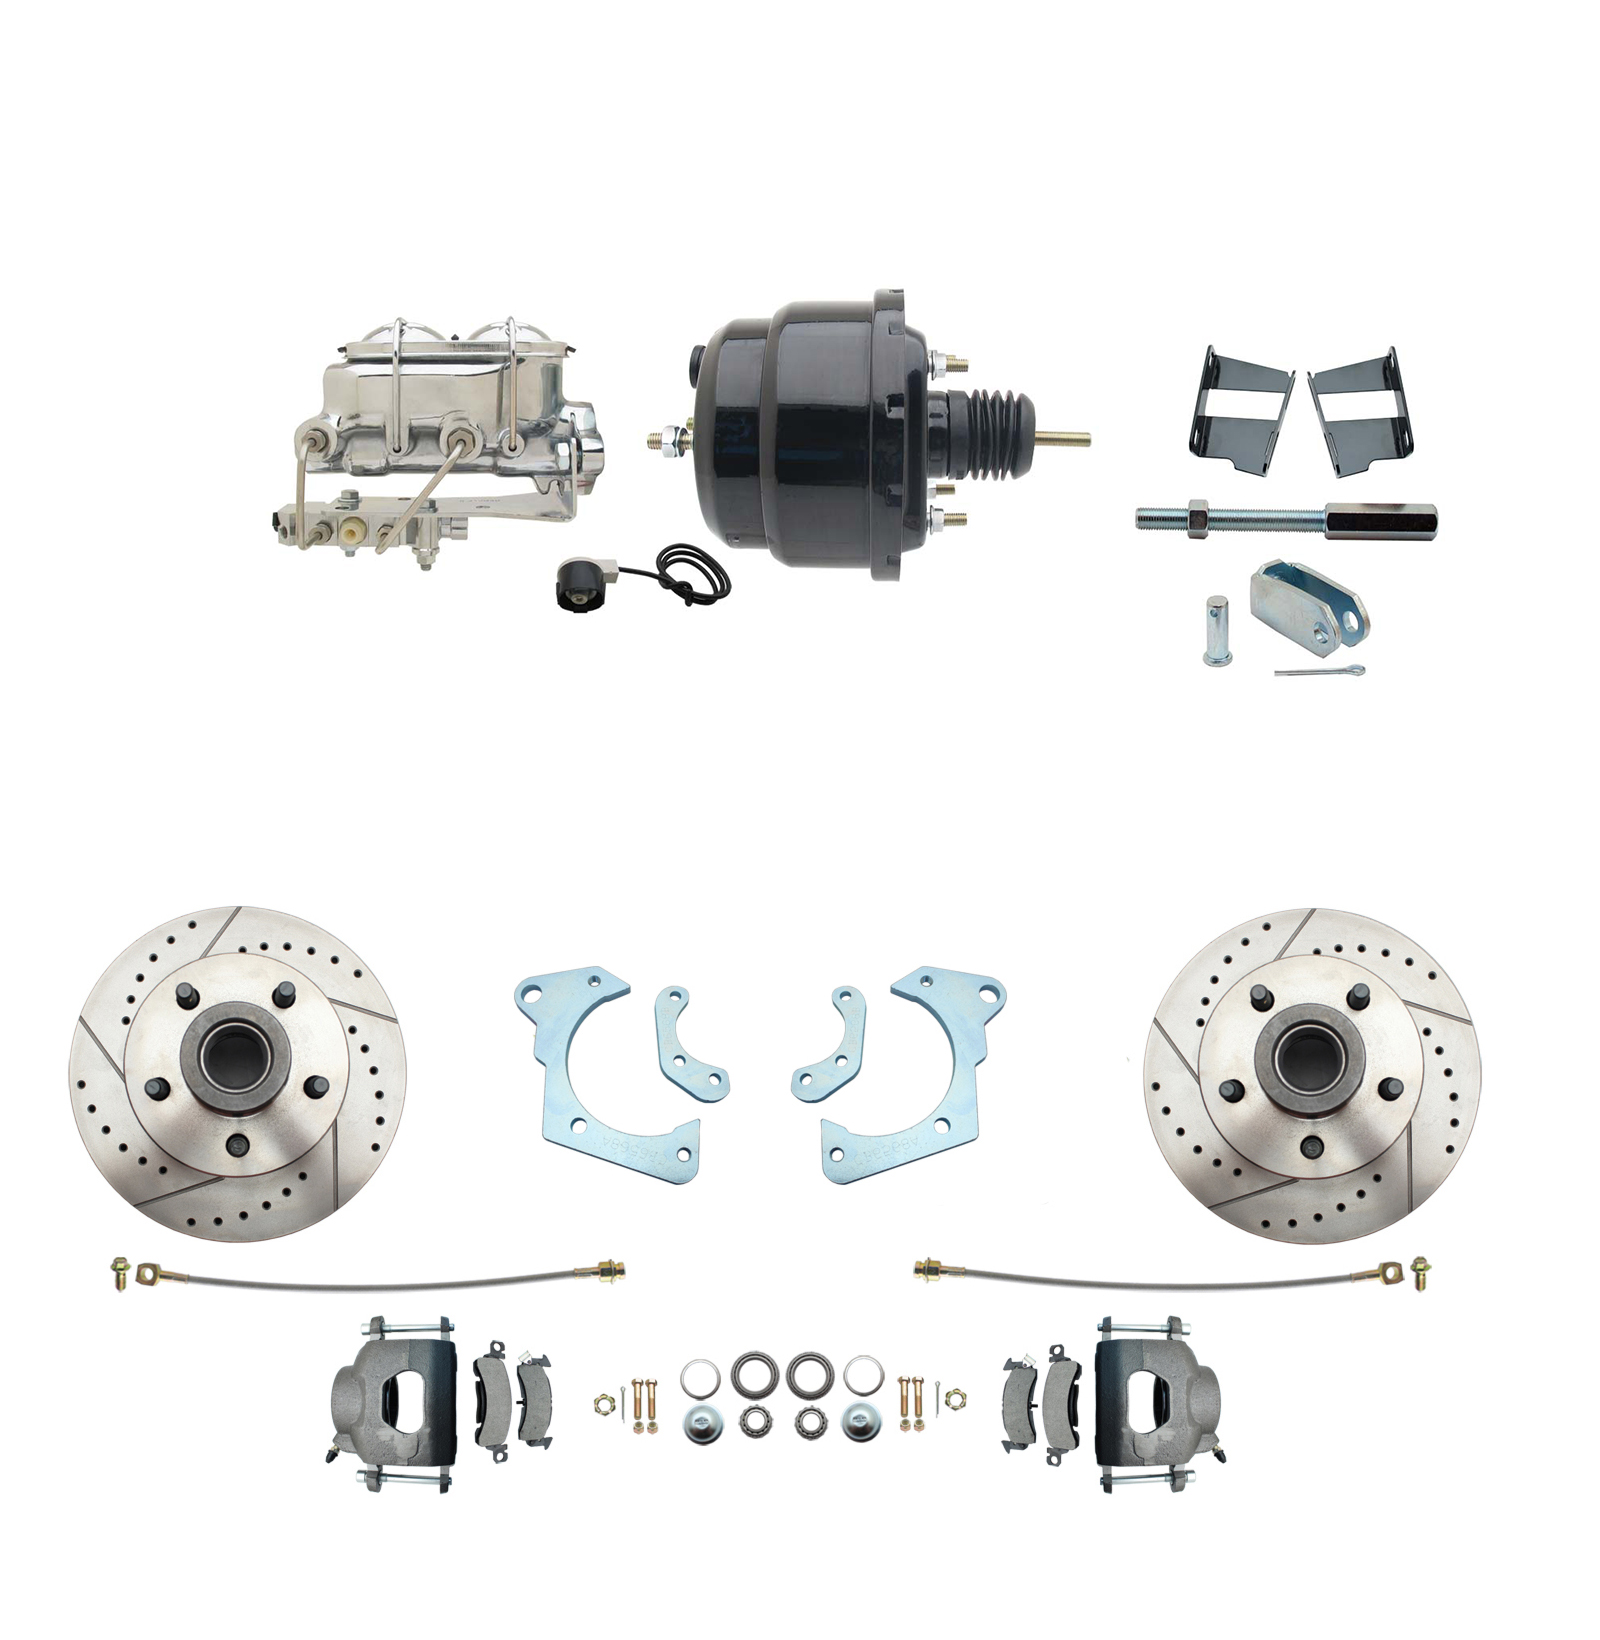 1965-1968 GM Full Size Disc Brake Kit Drilled/Slotted Rotors (Impala, Bel Air, Biscayne) & 8 Dual Powder Coated Black Booster Conversion Kit W/ Chrome Master Cylinder Bottom Mount Disc/ Drum Proportioning Valve Kit